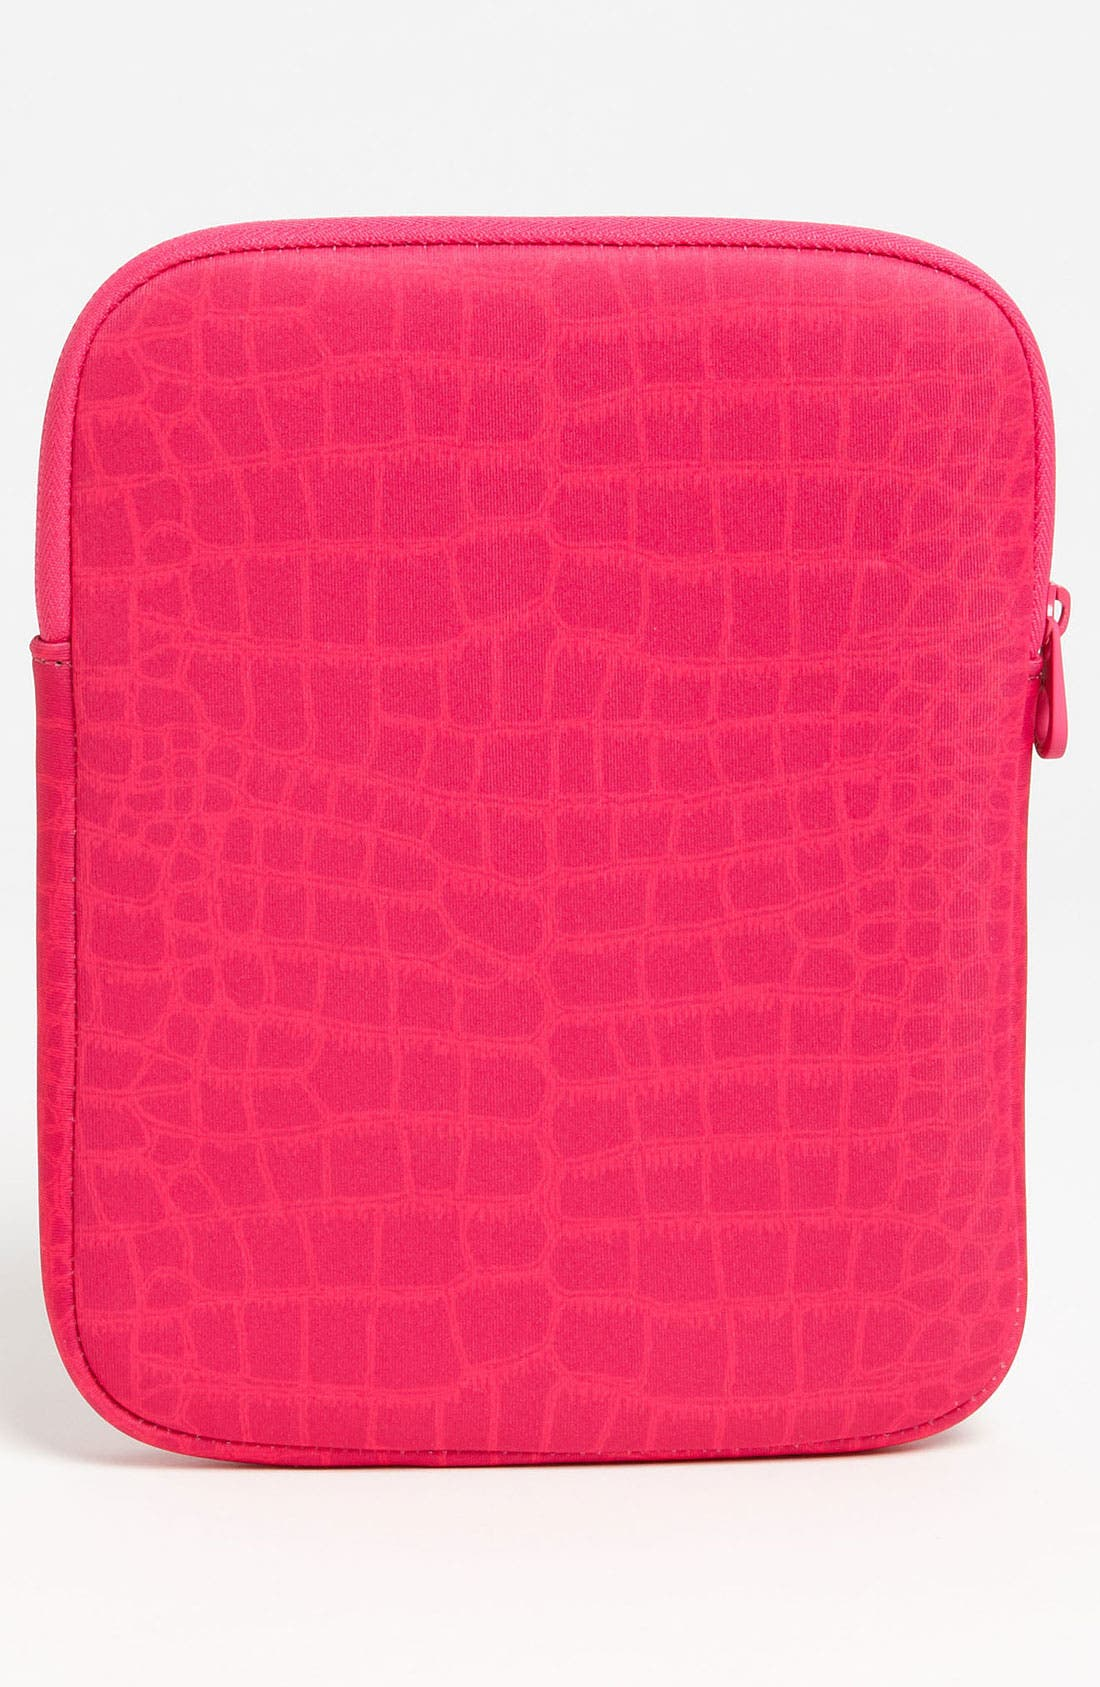 Alternate Image 4  - MARC BY MARC JACOBS 'Trompe l'Oeil' Croc Print Tablet Sleeve